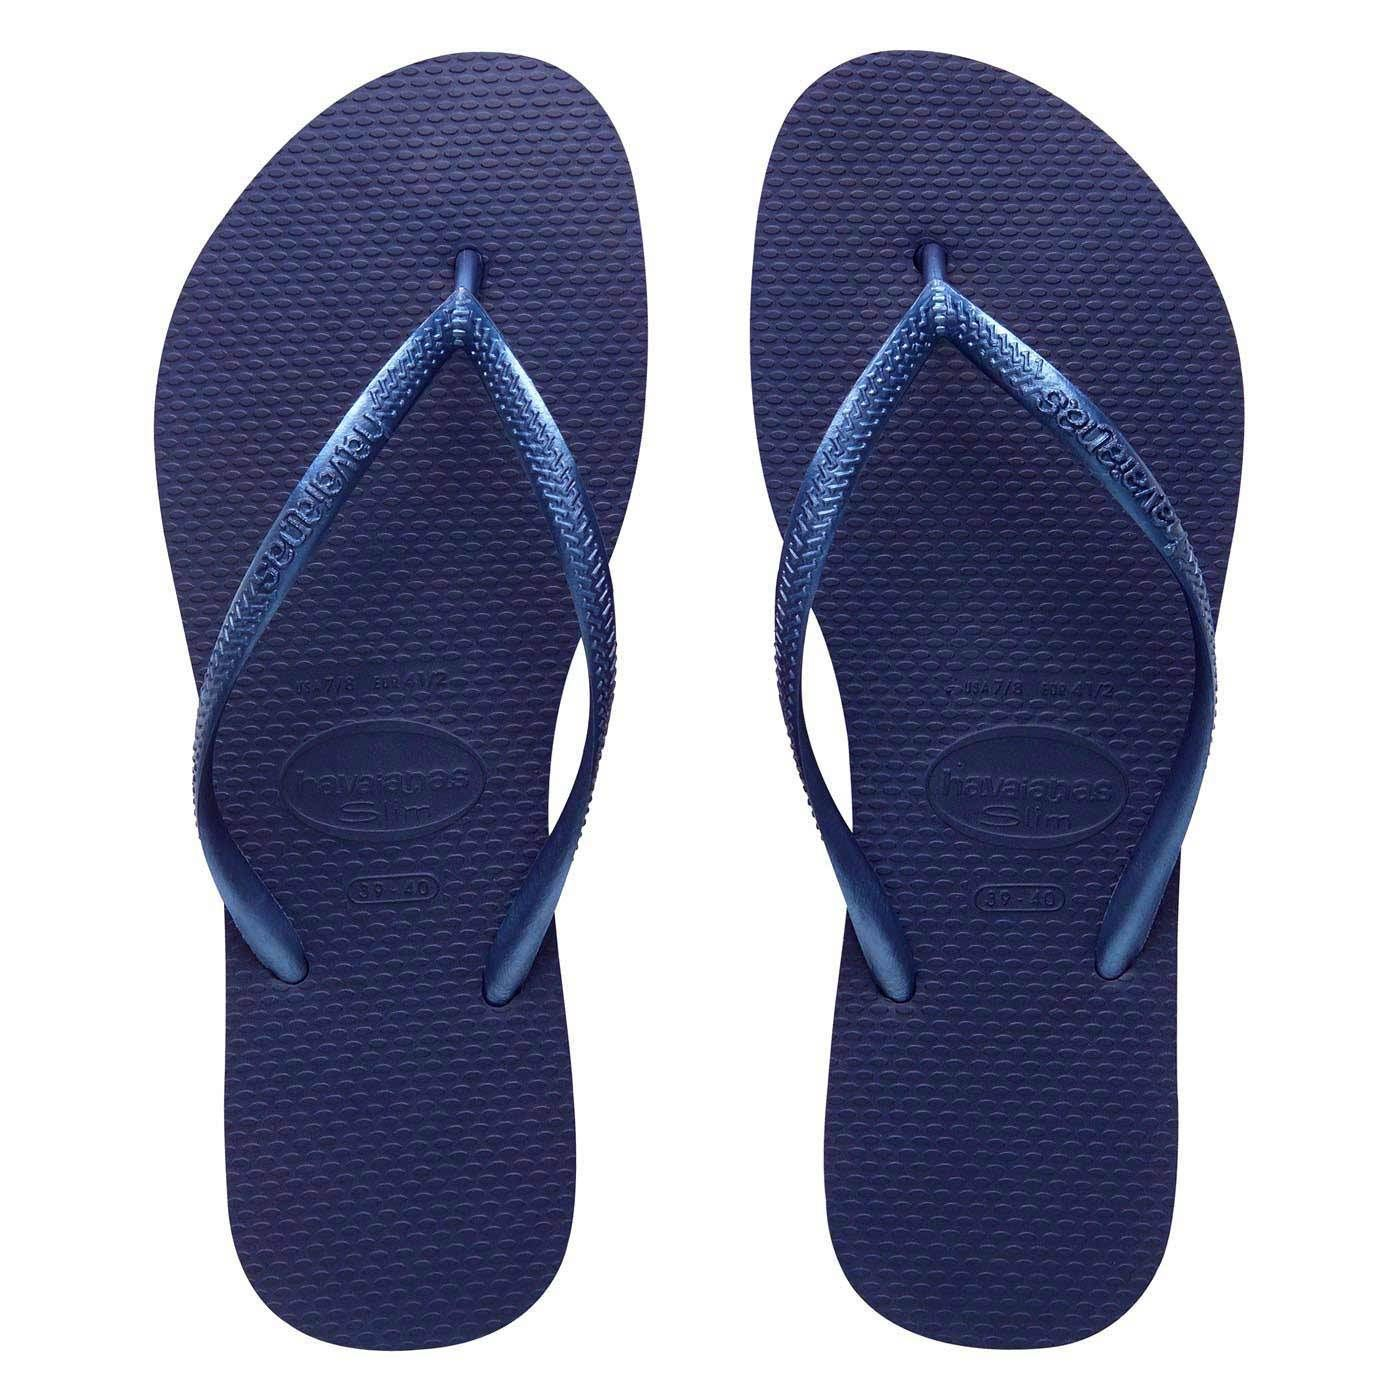 2408ea9b823d Havaianas Slim Brazil Women s Flip Flops Blue Brand new All sizes